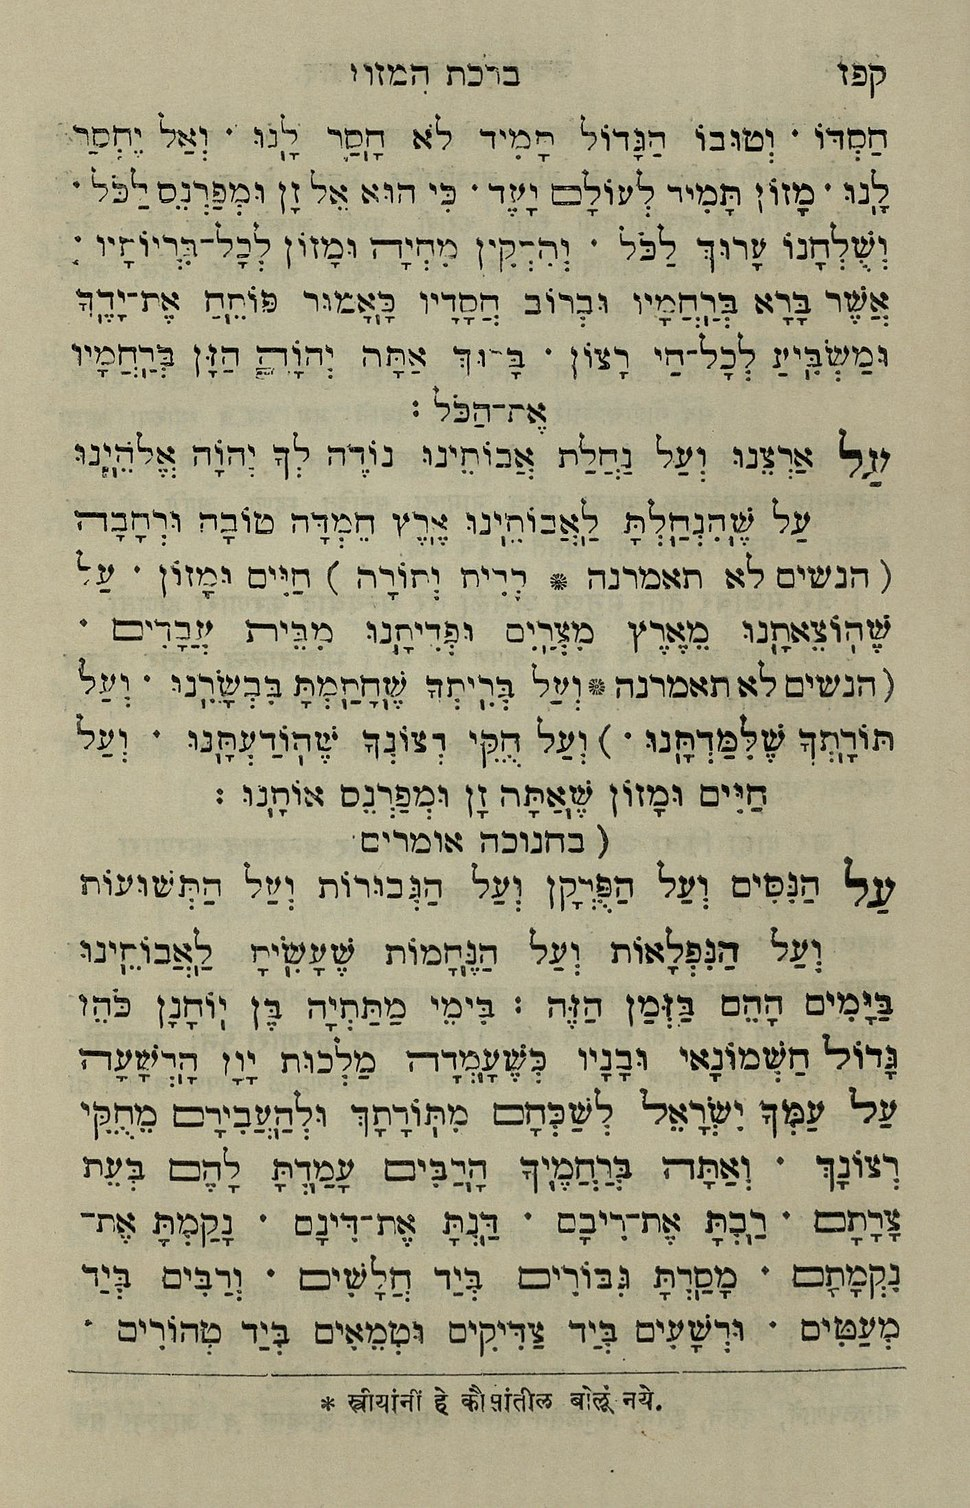 The National Library of Israel - The Daily Prayers translated from Hebrew to Marathi 1388864 2340601-10-0376 WEB